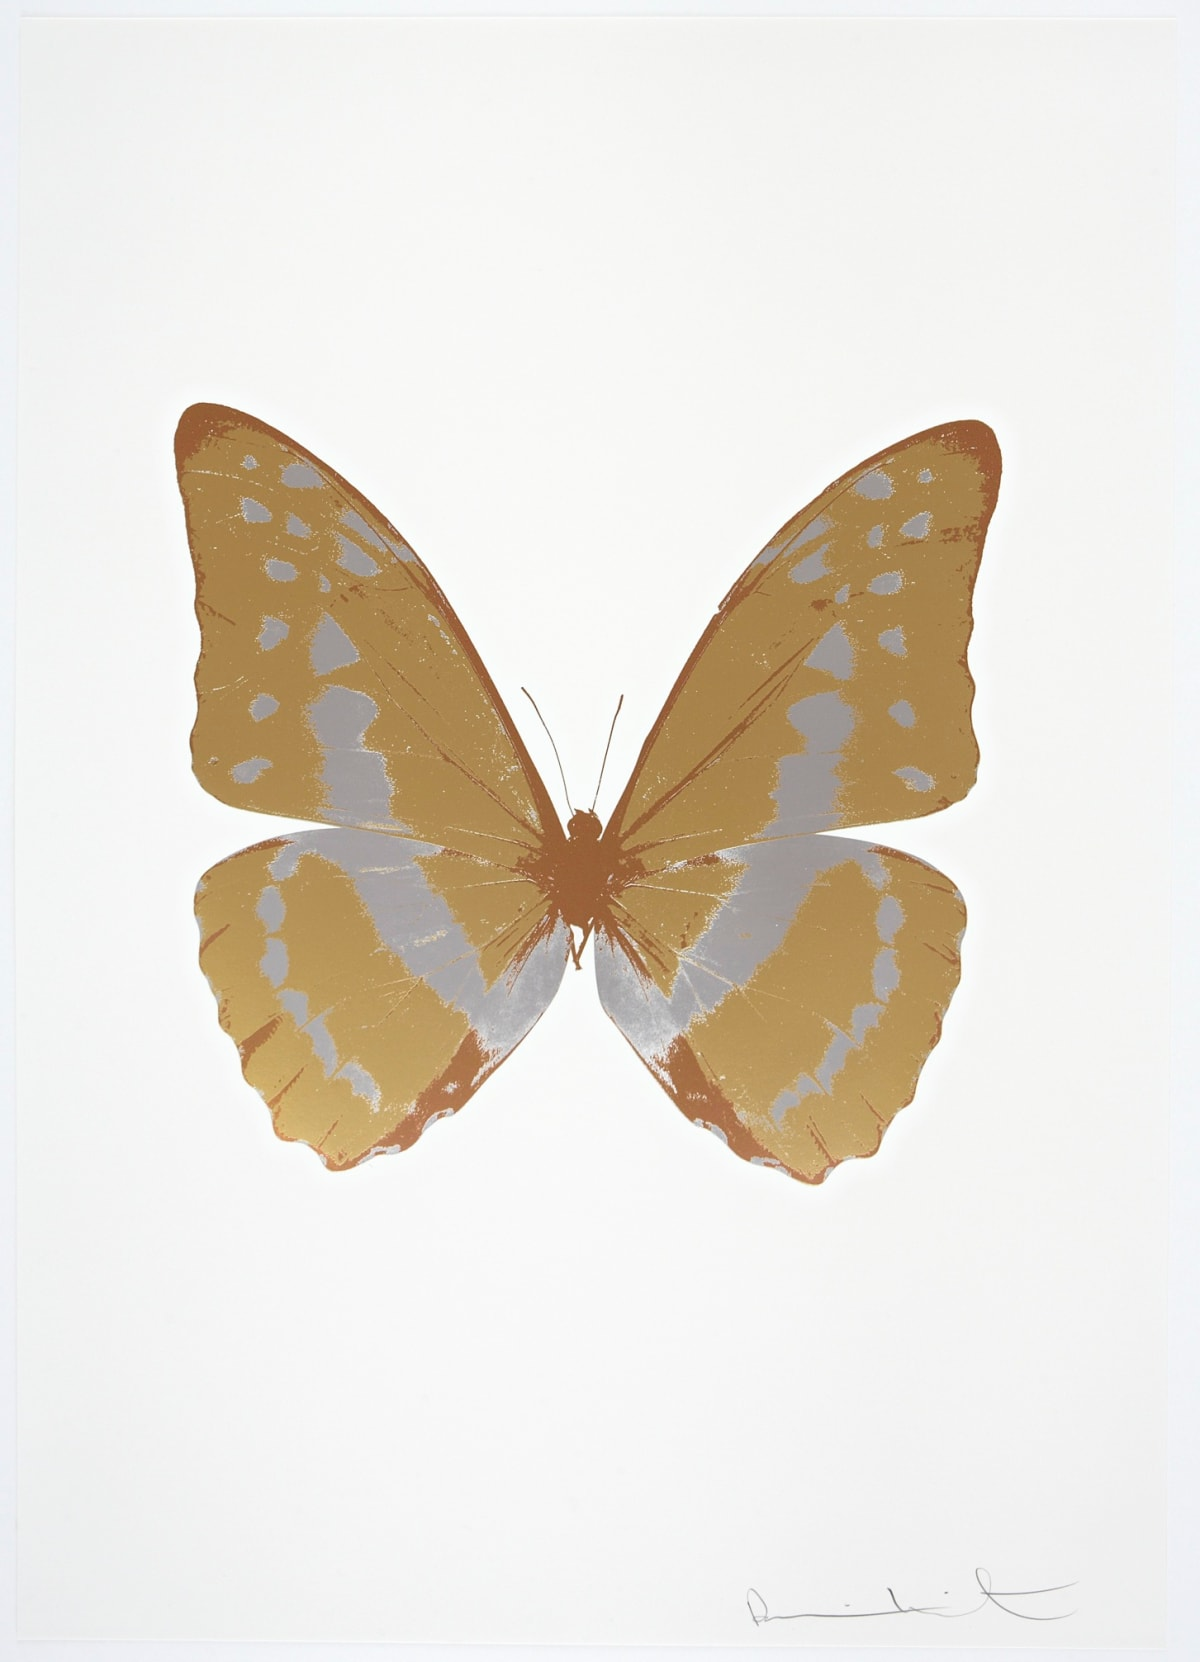 Damien Hirst The Souls III - Hazy Gold/Silver Gloss/Rustic Copper, 2010 3 colour foil block on 300gsm Arches 88 archival paper. Signed and numbered. Published by Paul Stolper and Other Criteria 72 x 51cm OC7910 / 660-13 Edition of 15